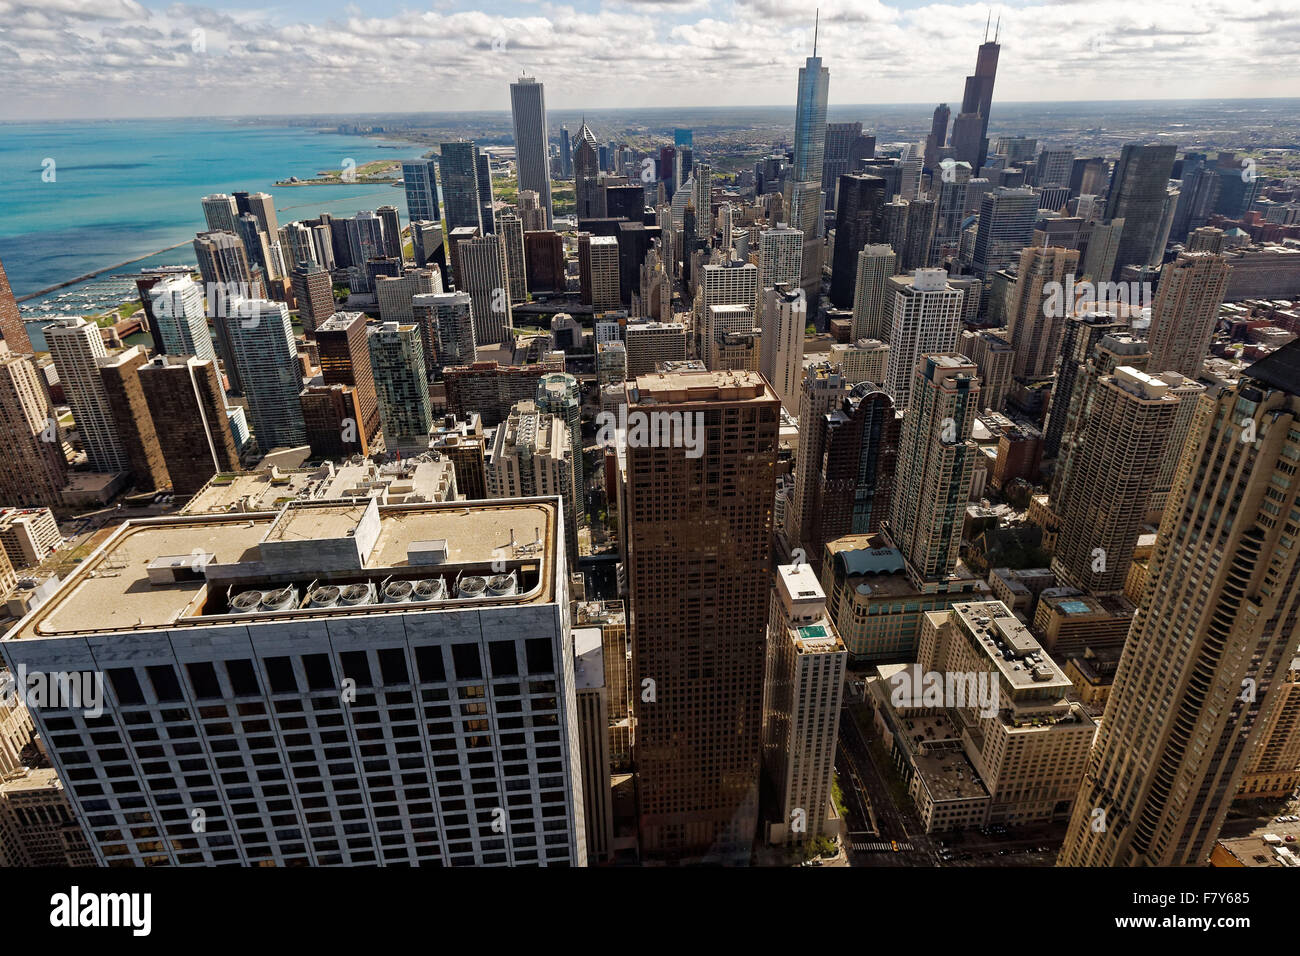 General view of Chicago, Illinois, on the banks of Lake Michigan. photo by Trevor Collens 16/4/2014 - Stock Image